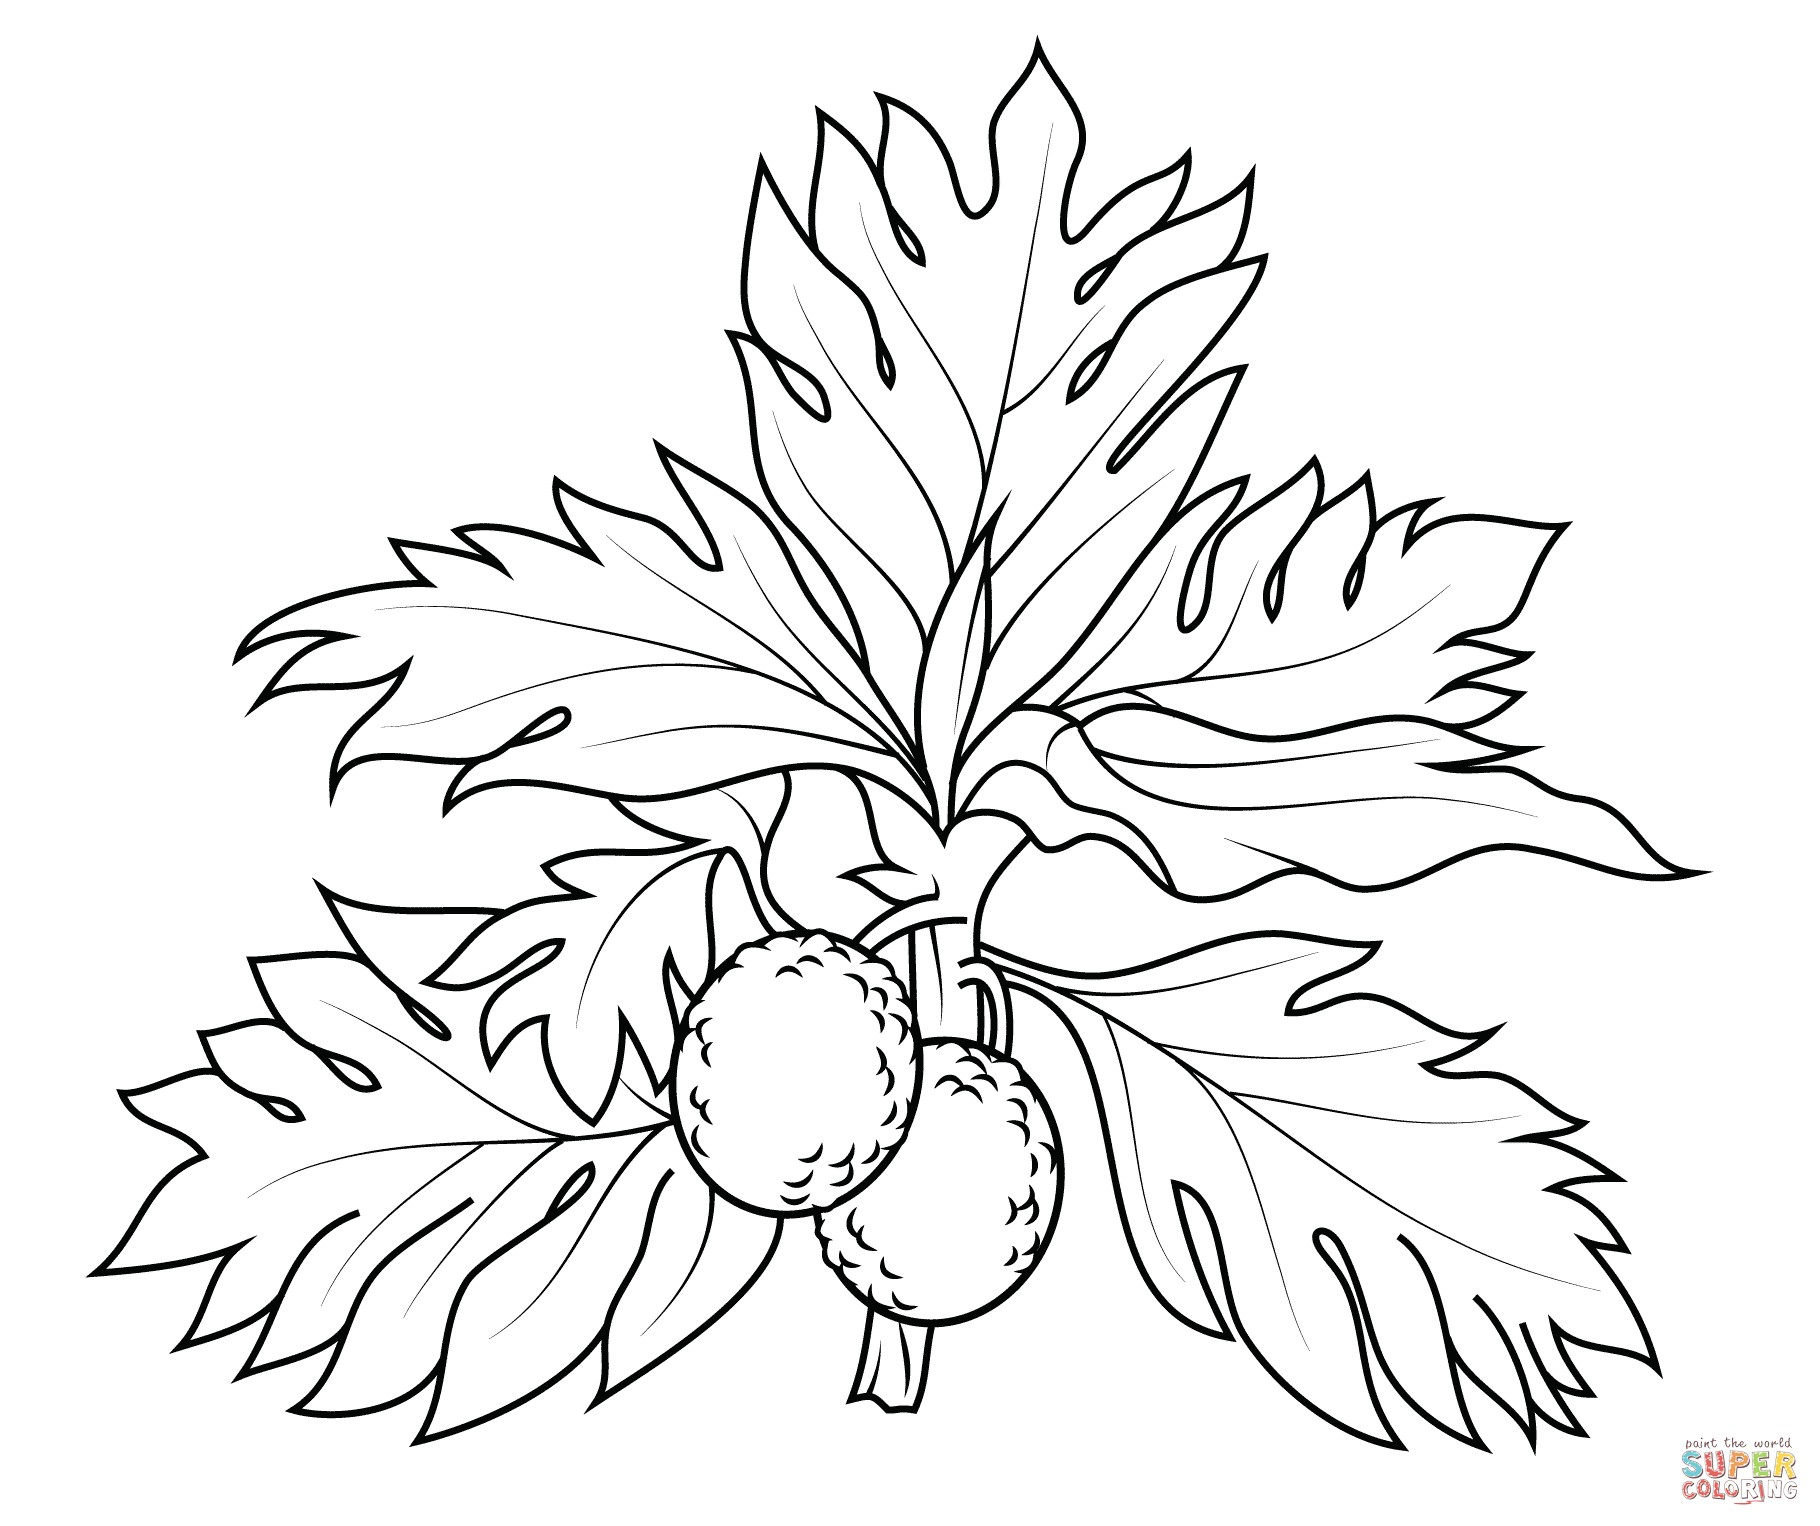 1820x1526 Clanberry Fruits And Berries Coloring Pages For Kids Awesome Best